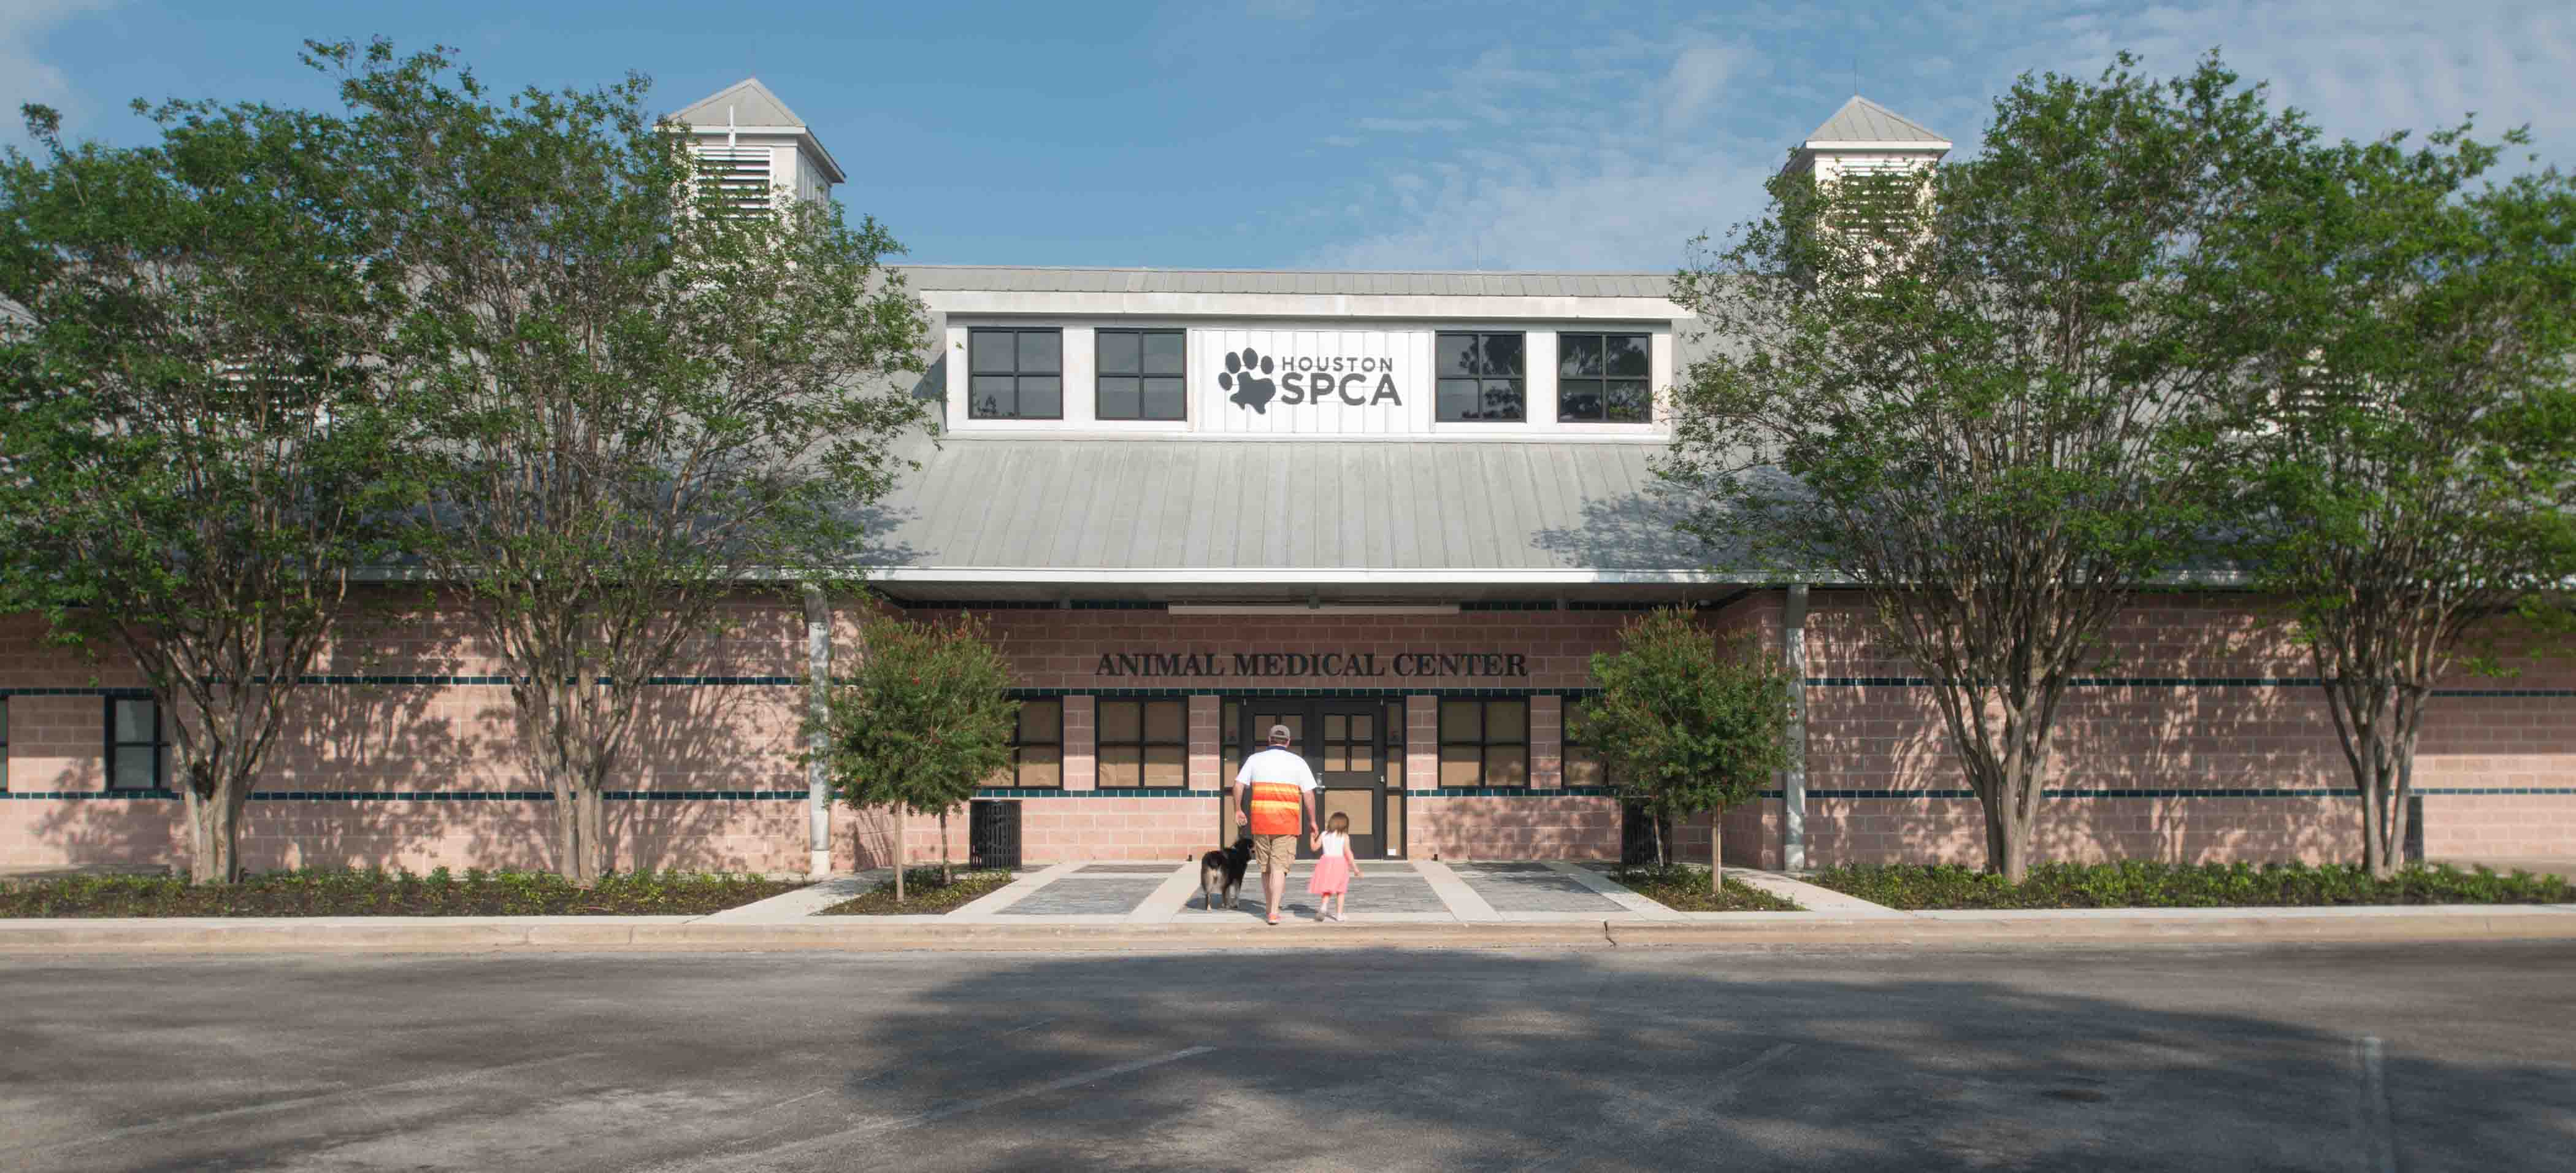 Jackson & Ryan Architects Houston SPCA Campus for All Animals 8 Animal Medical Center